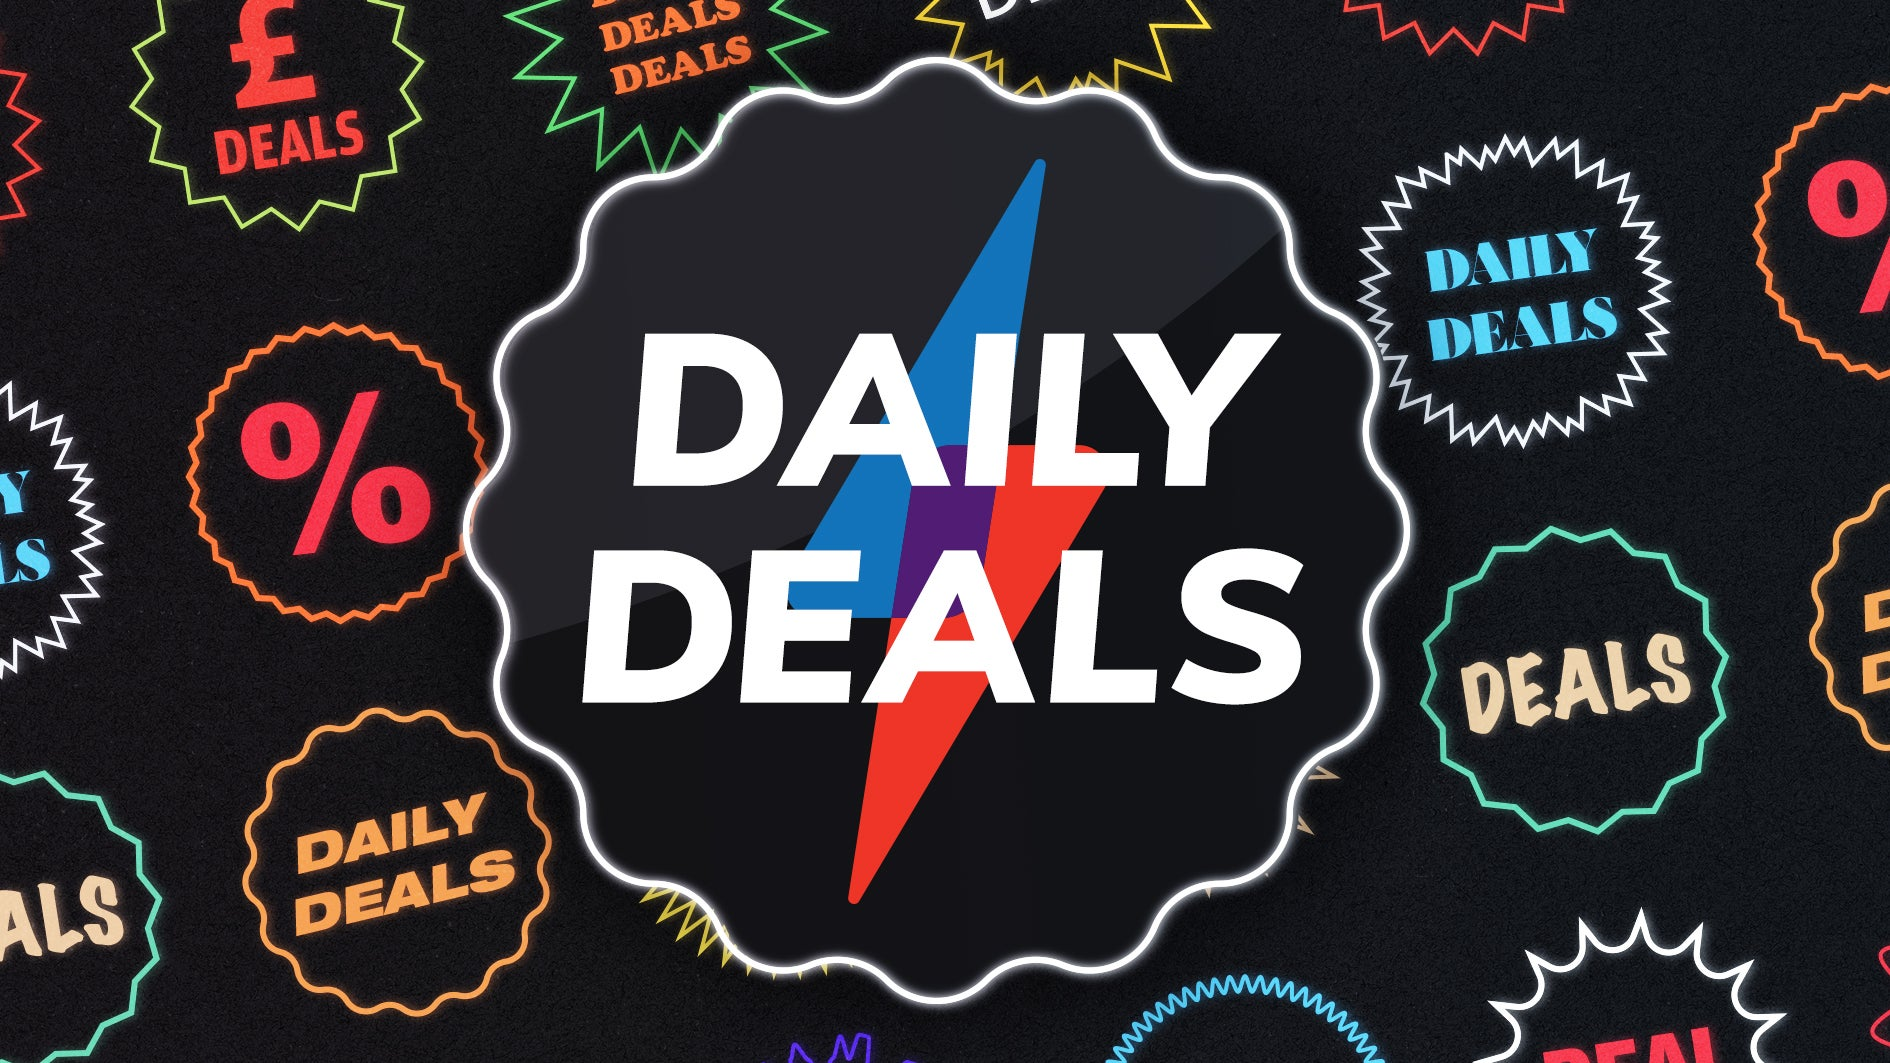 Daily Deals: Philips Hue Price Drop and a Fujifilm Throwback Thursday